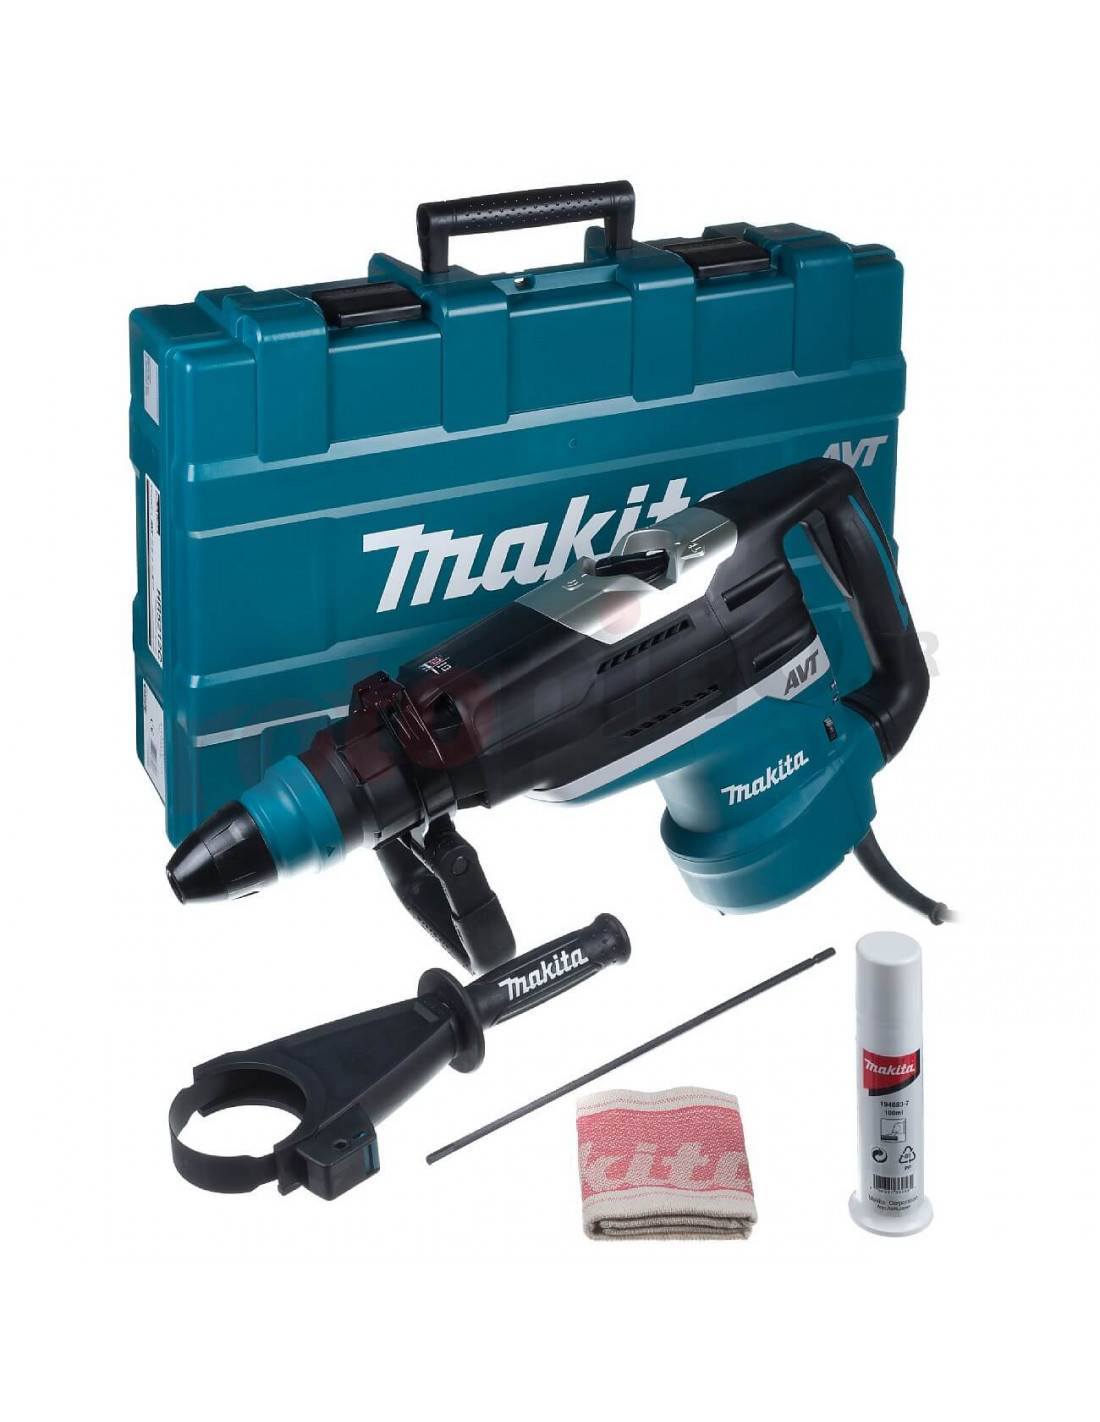 MAKITA - Perfo-burineur SDS-MAX 1500W en coffret standard - HR5212C